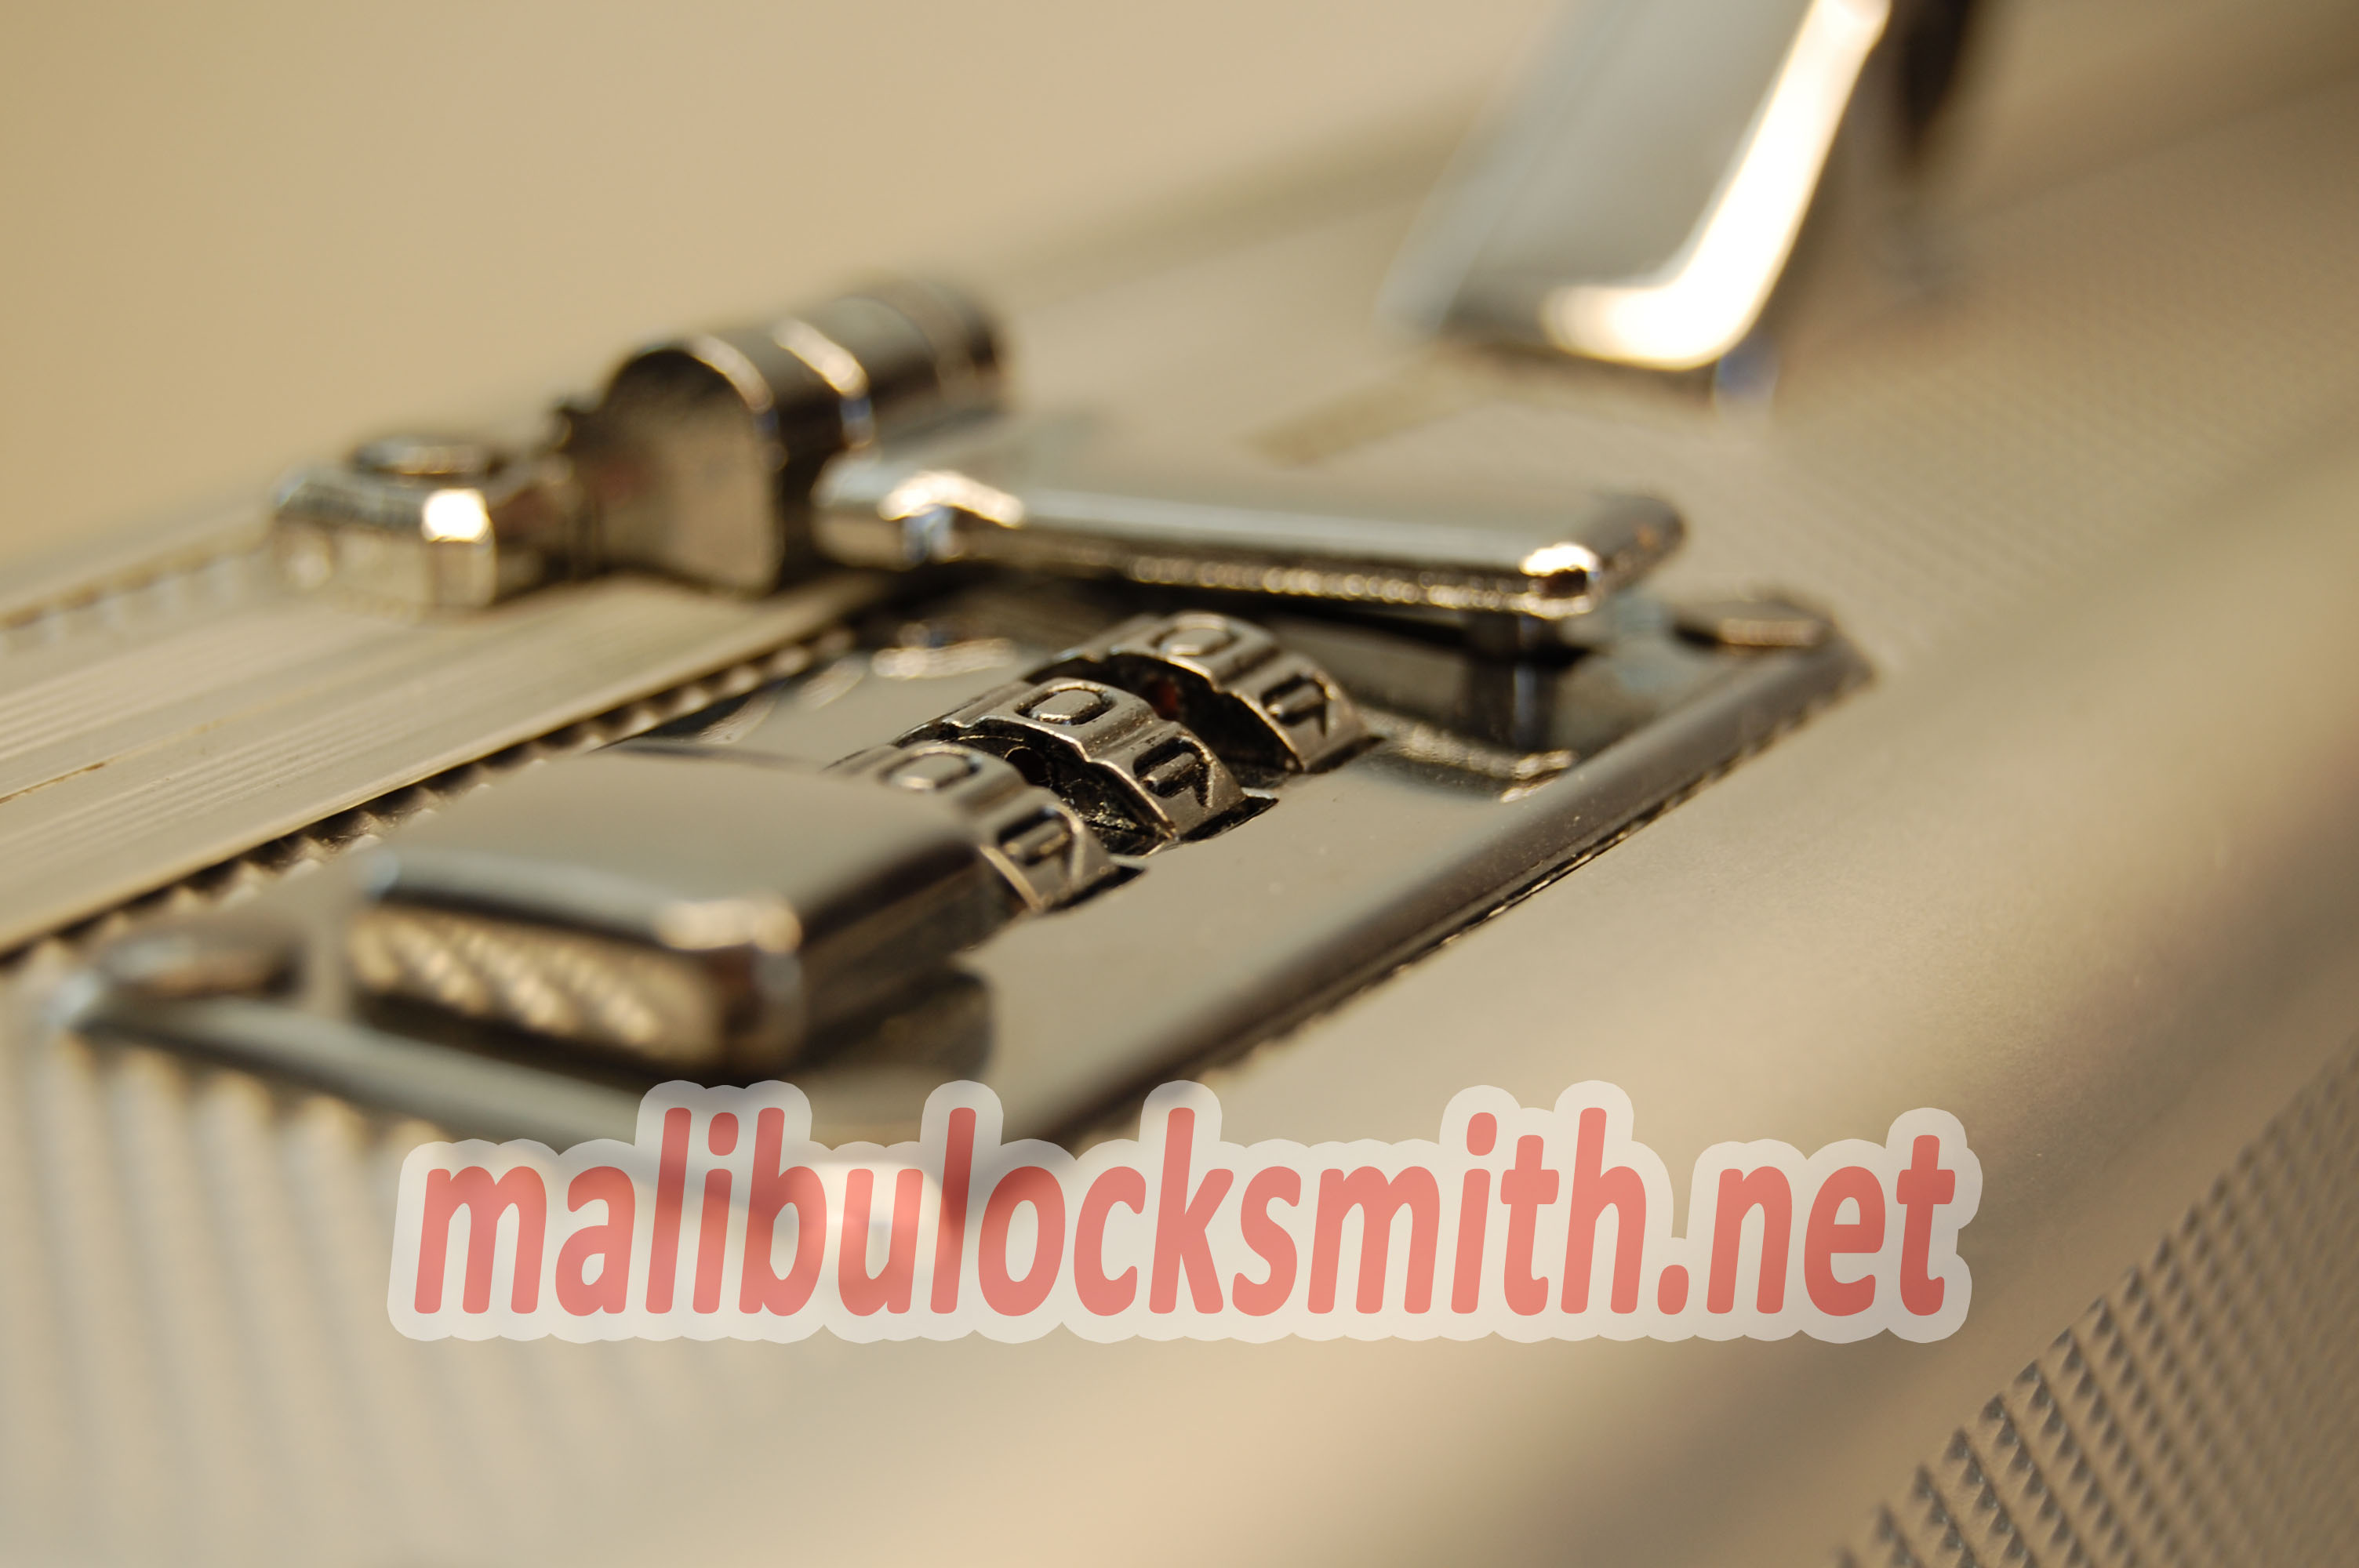 Malibu Commercial Locksmith